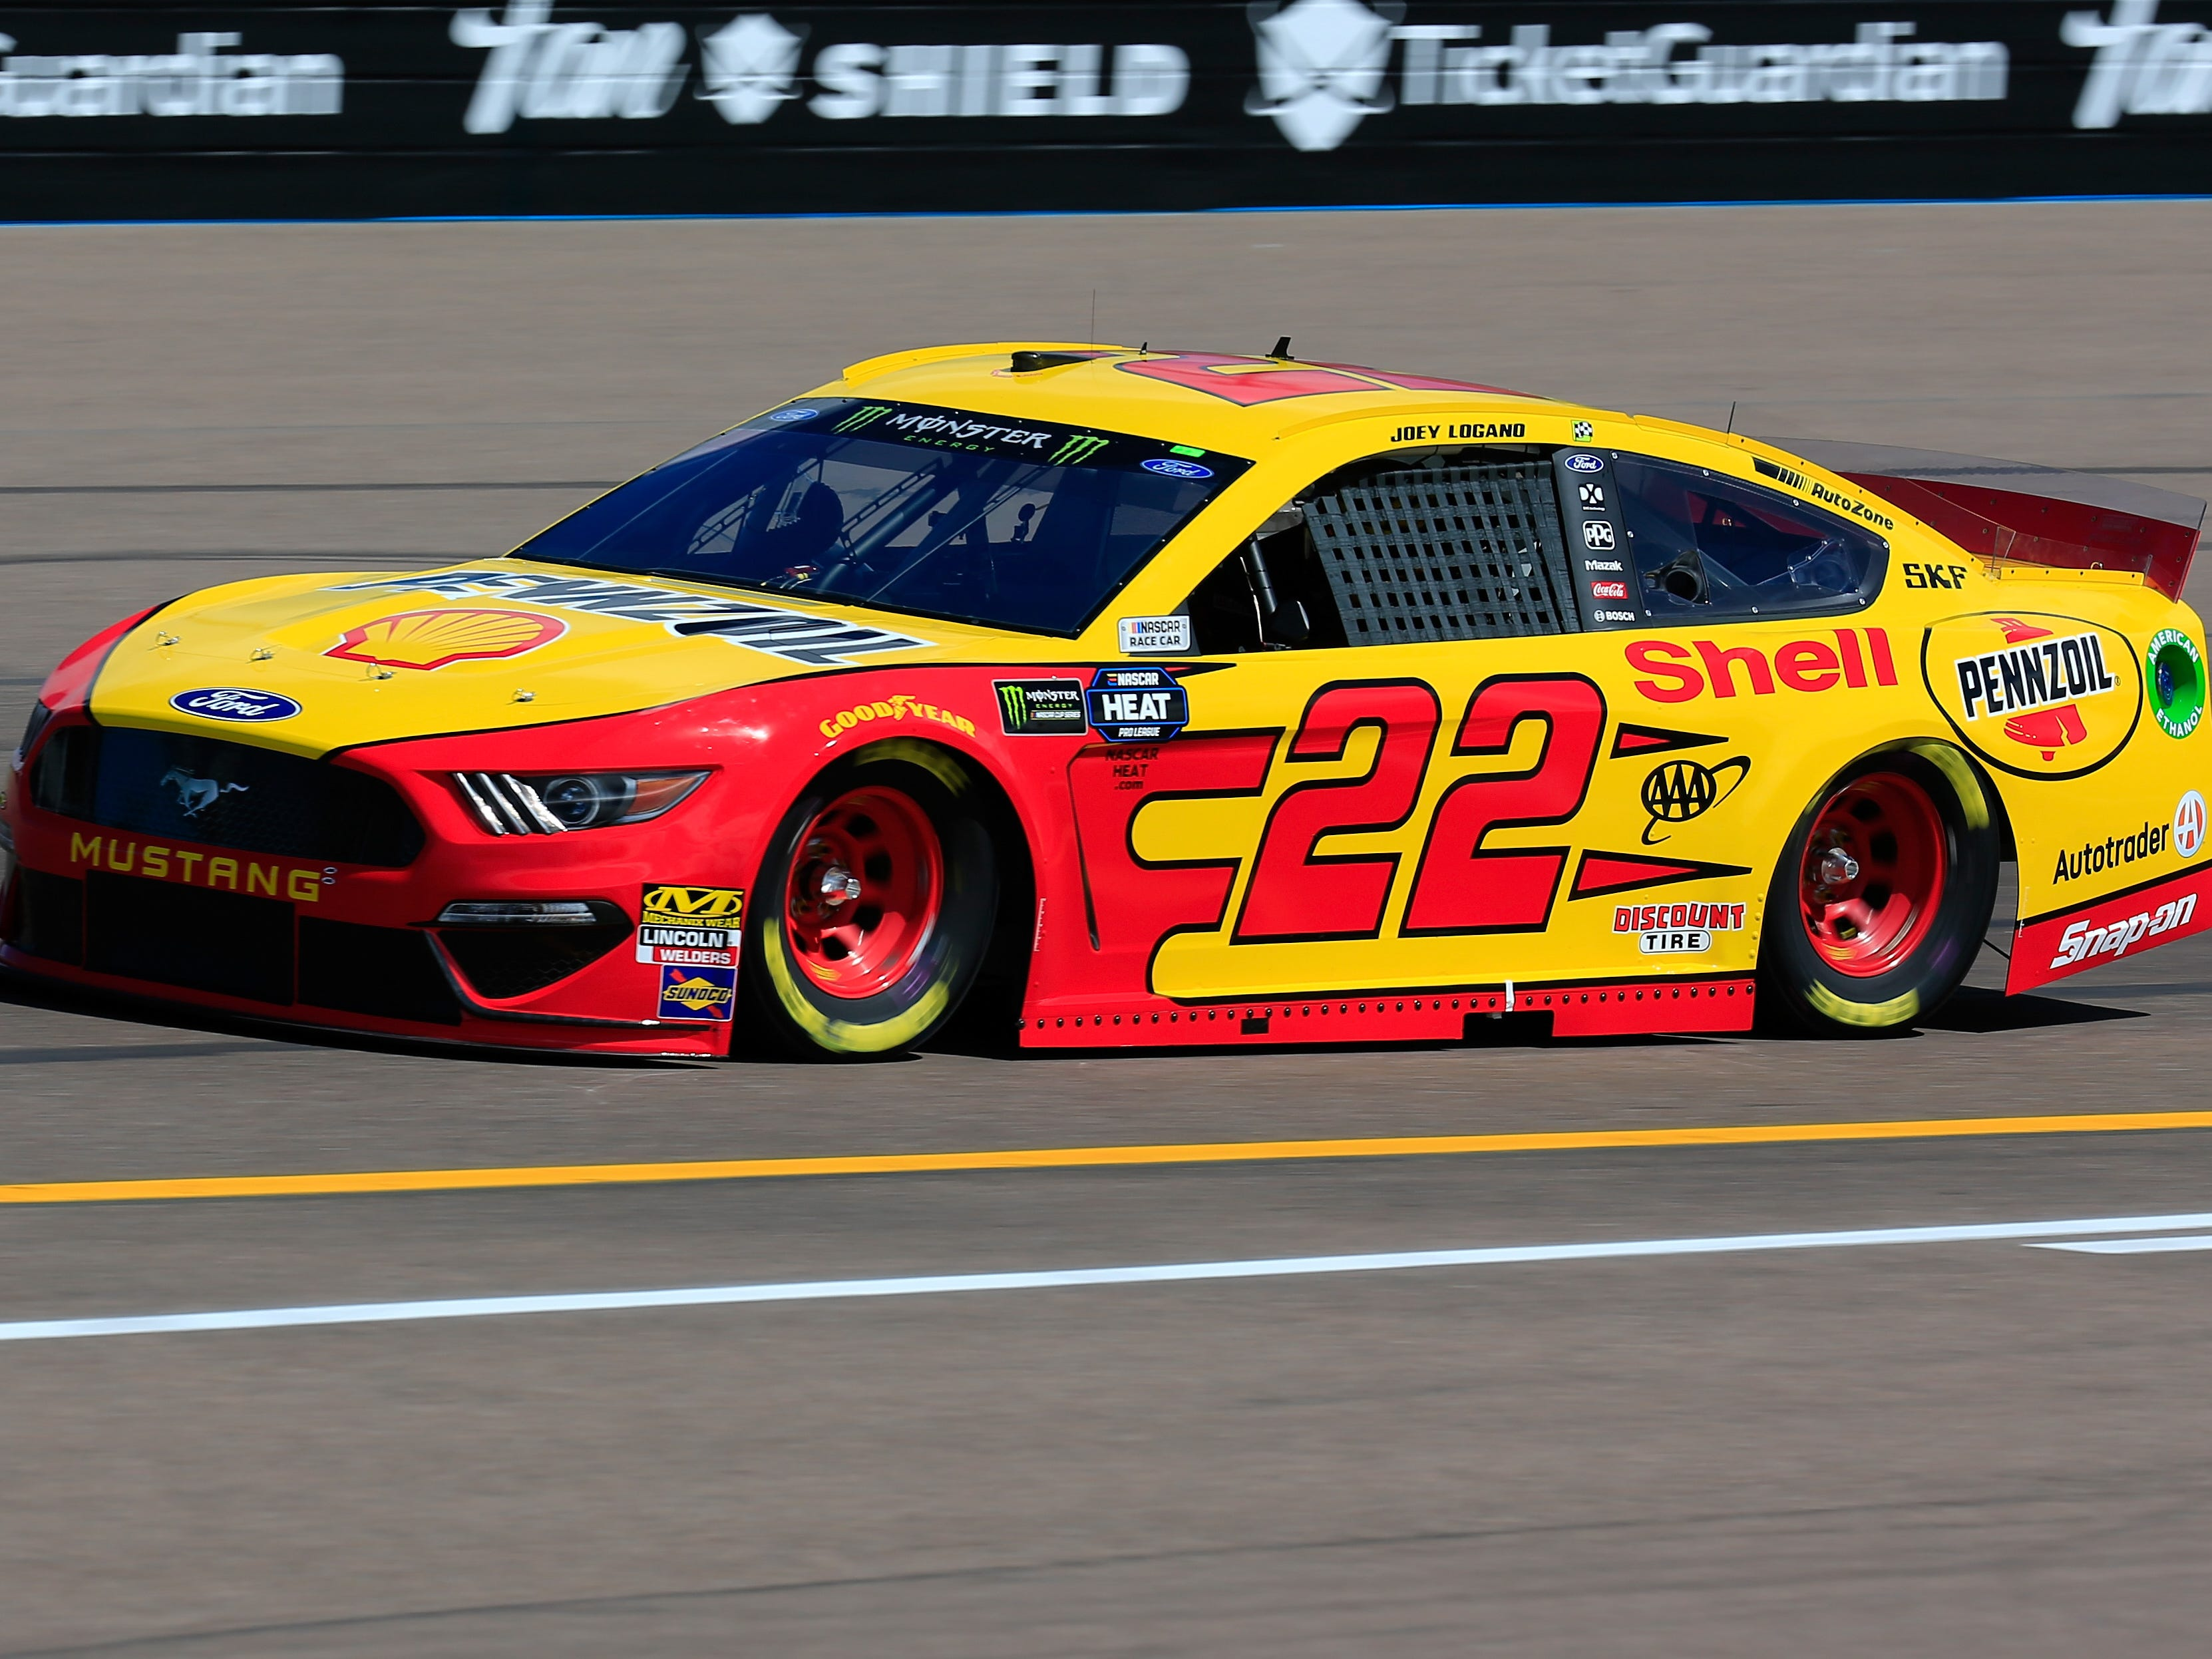 AVONDALE, AZ - MARCH 08: Joey Logano, driver of the #22 Shell Pennzoil Ford, practices for the Monster Energy NASCAR Cup Series TicketGuardian 500 at ISM Raceway on March 8, 2019 in Avondale, Arizona.